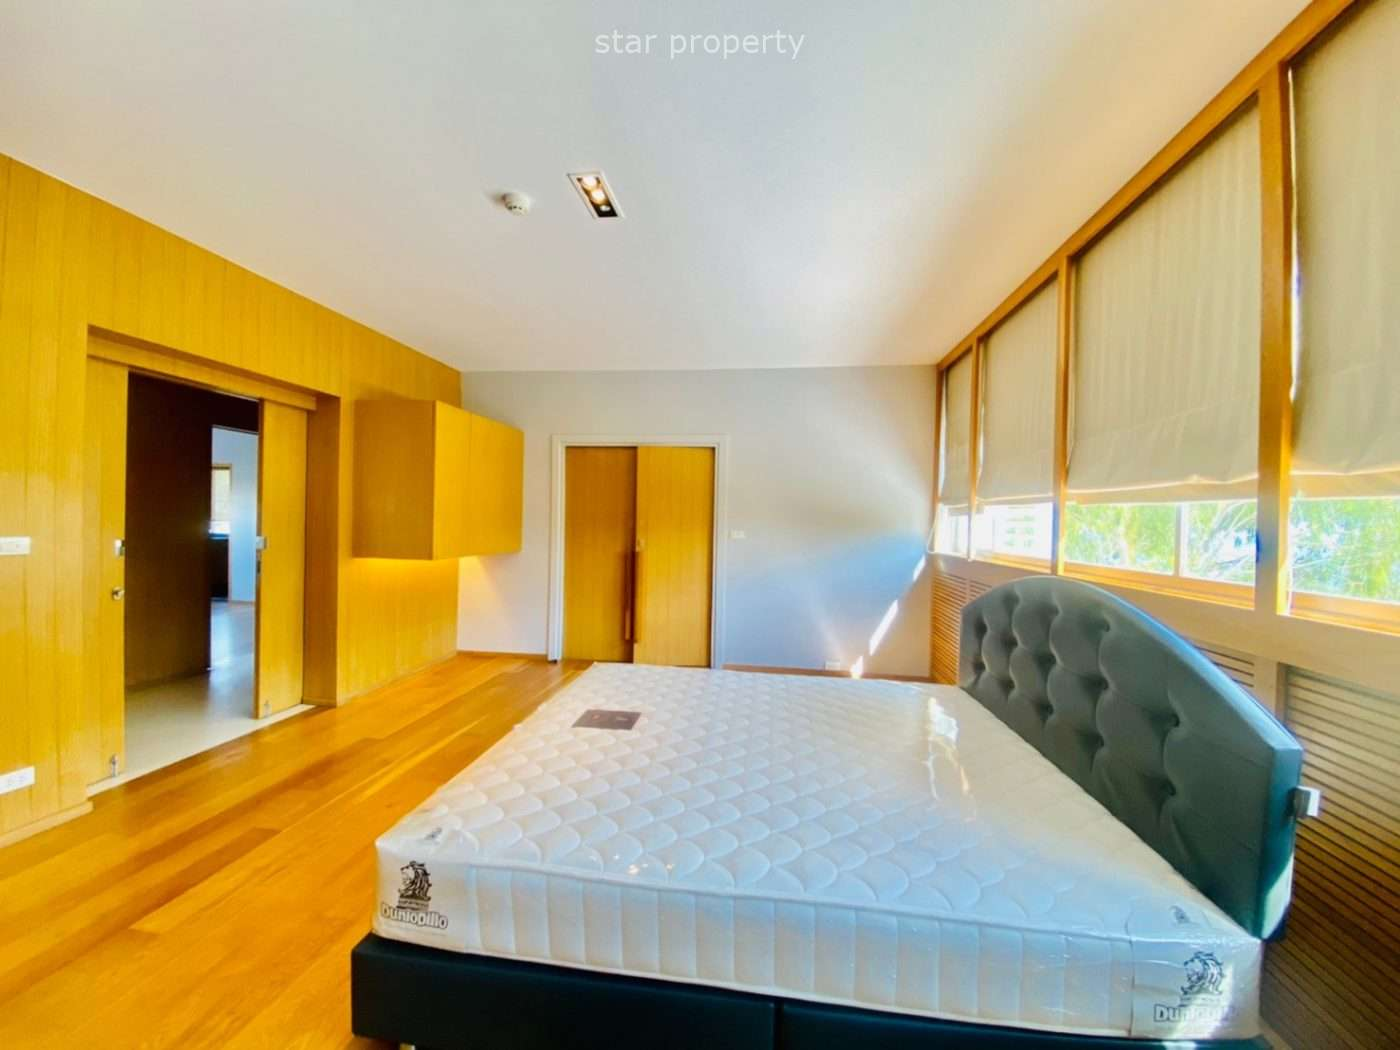 Luxury 4 Bedrooms condo for sale at Royal Princess Hua Hin